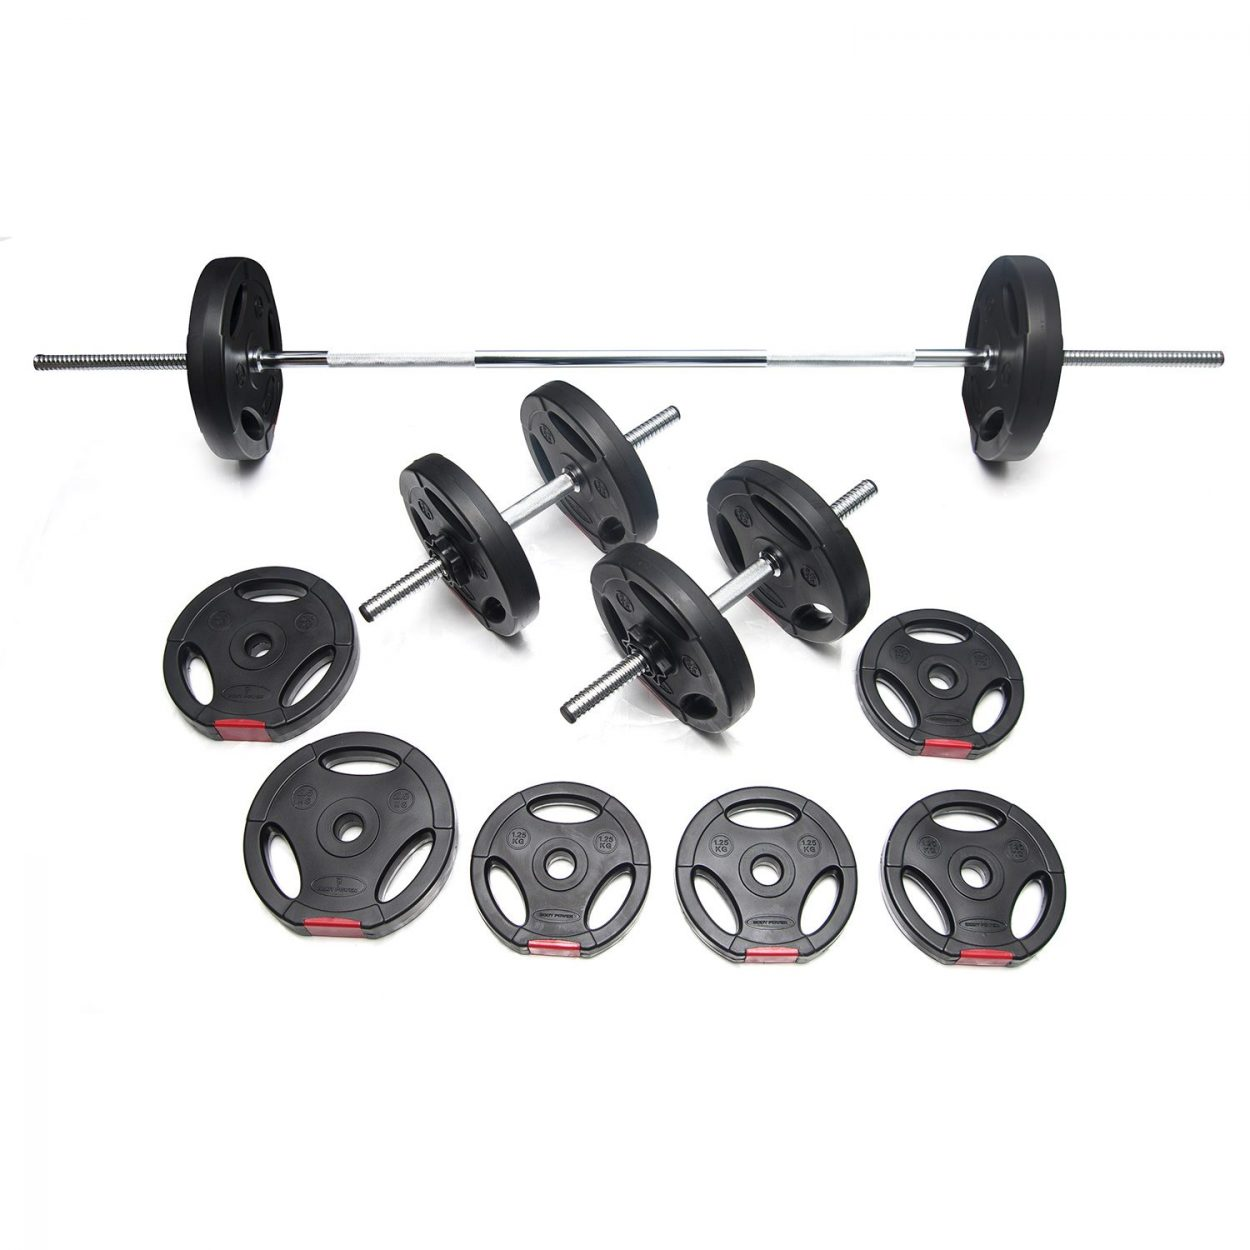 Body Power 32kg Tri-Grip Vinyl Weight Set with 2 Piece Bar